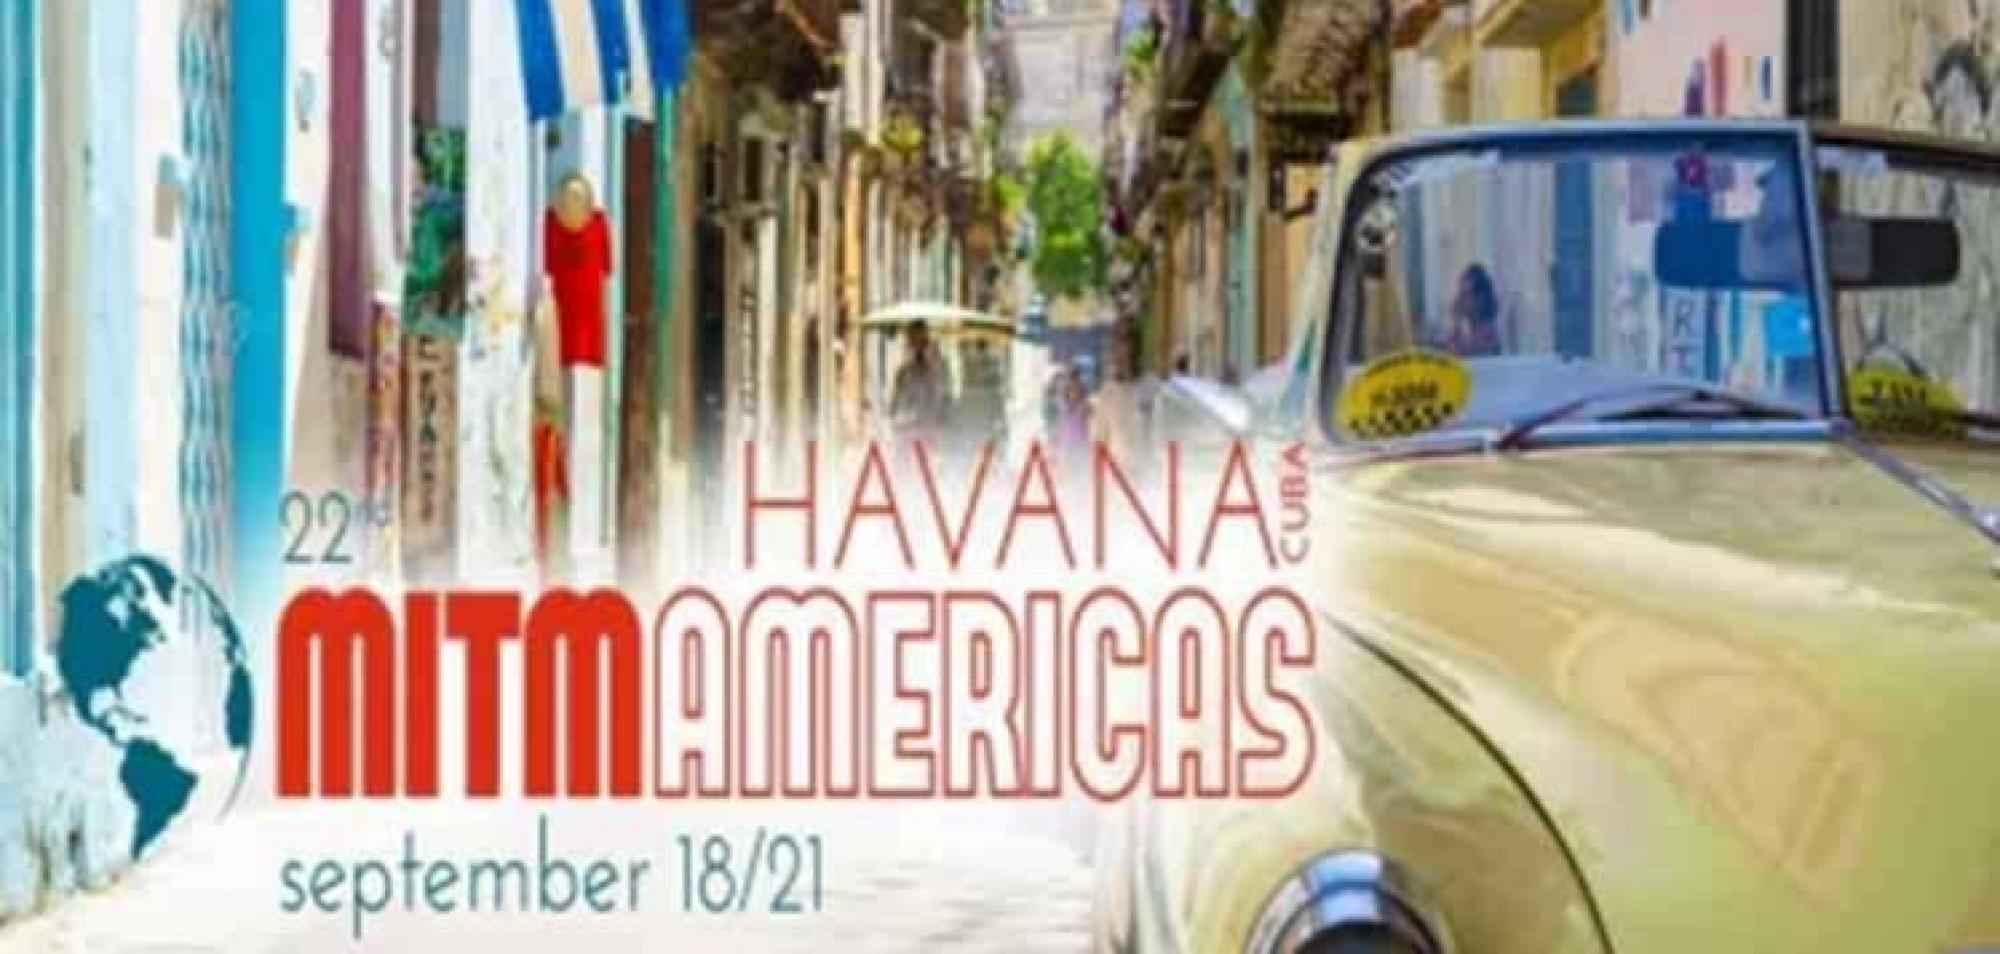 Incentives Tourism Event Opens in Havana